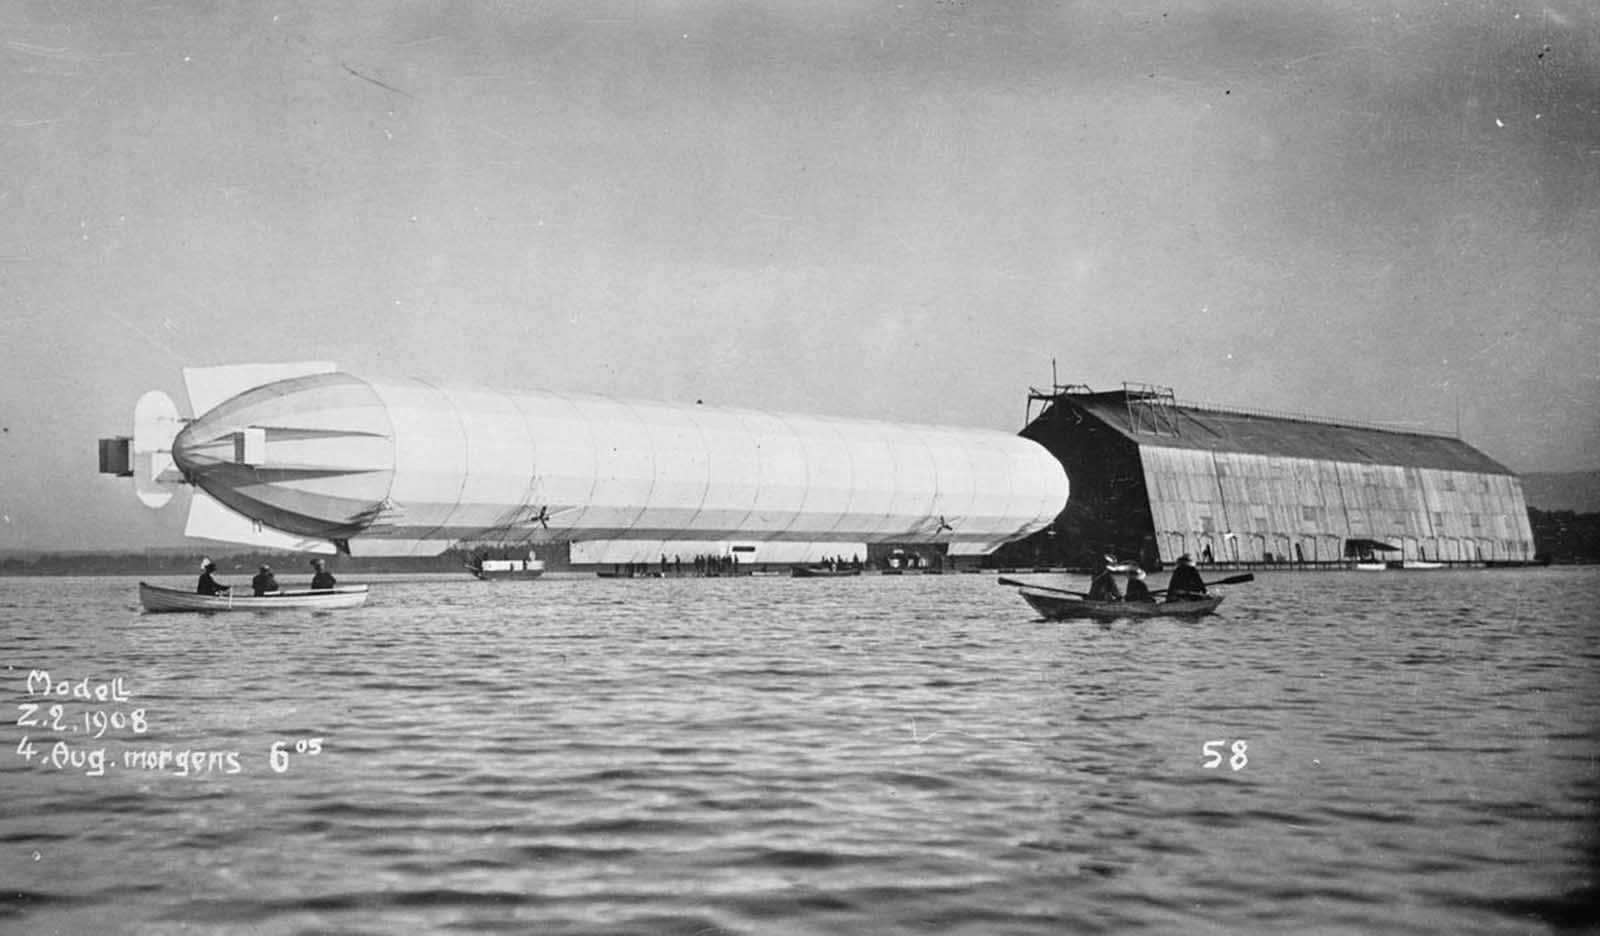 Zeppelin airship seen from water, August 4, 1908.